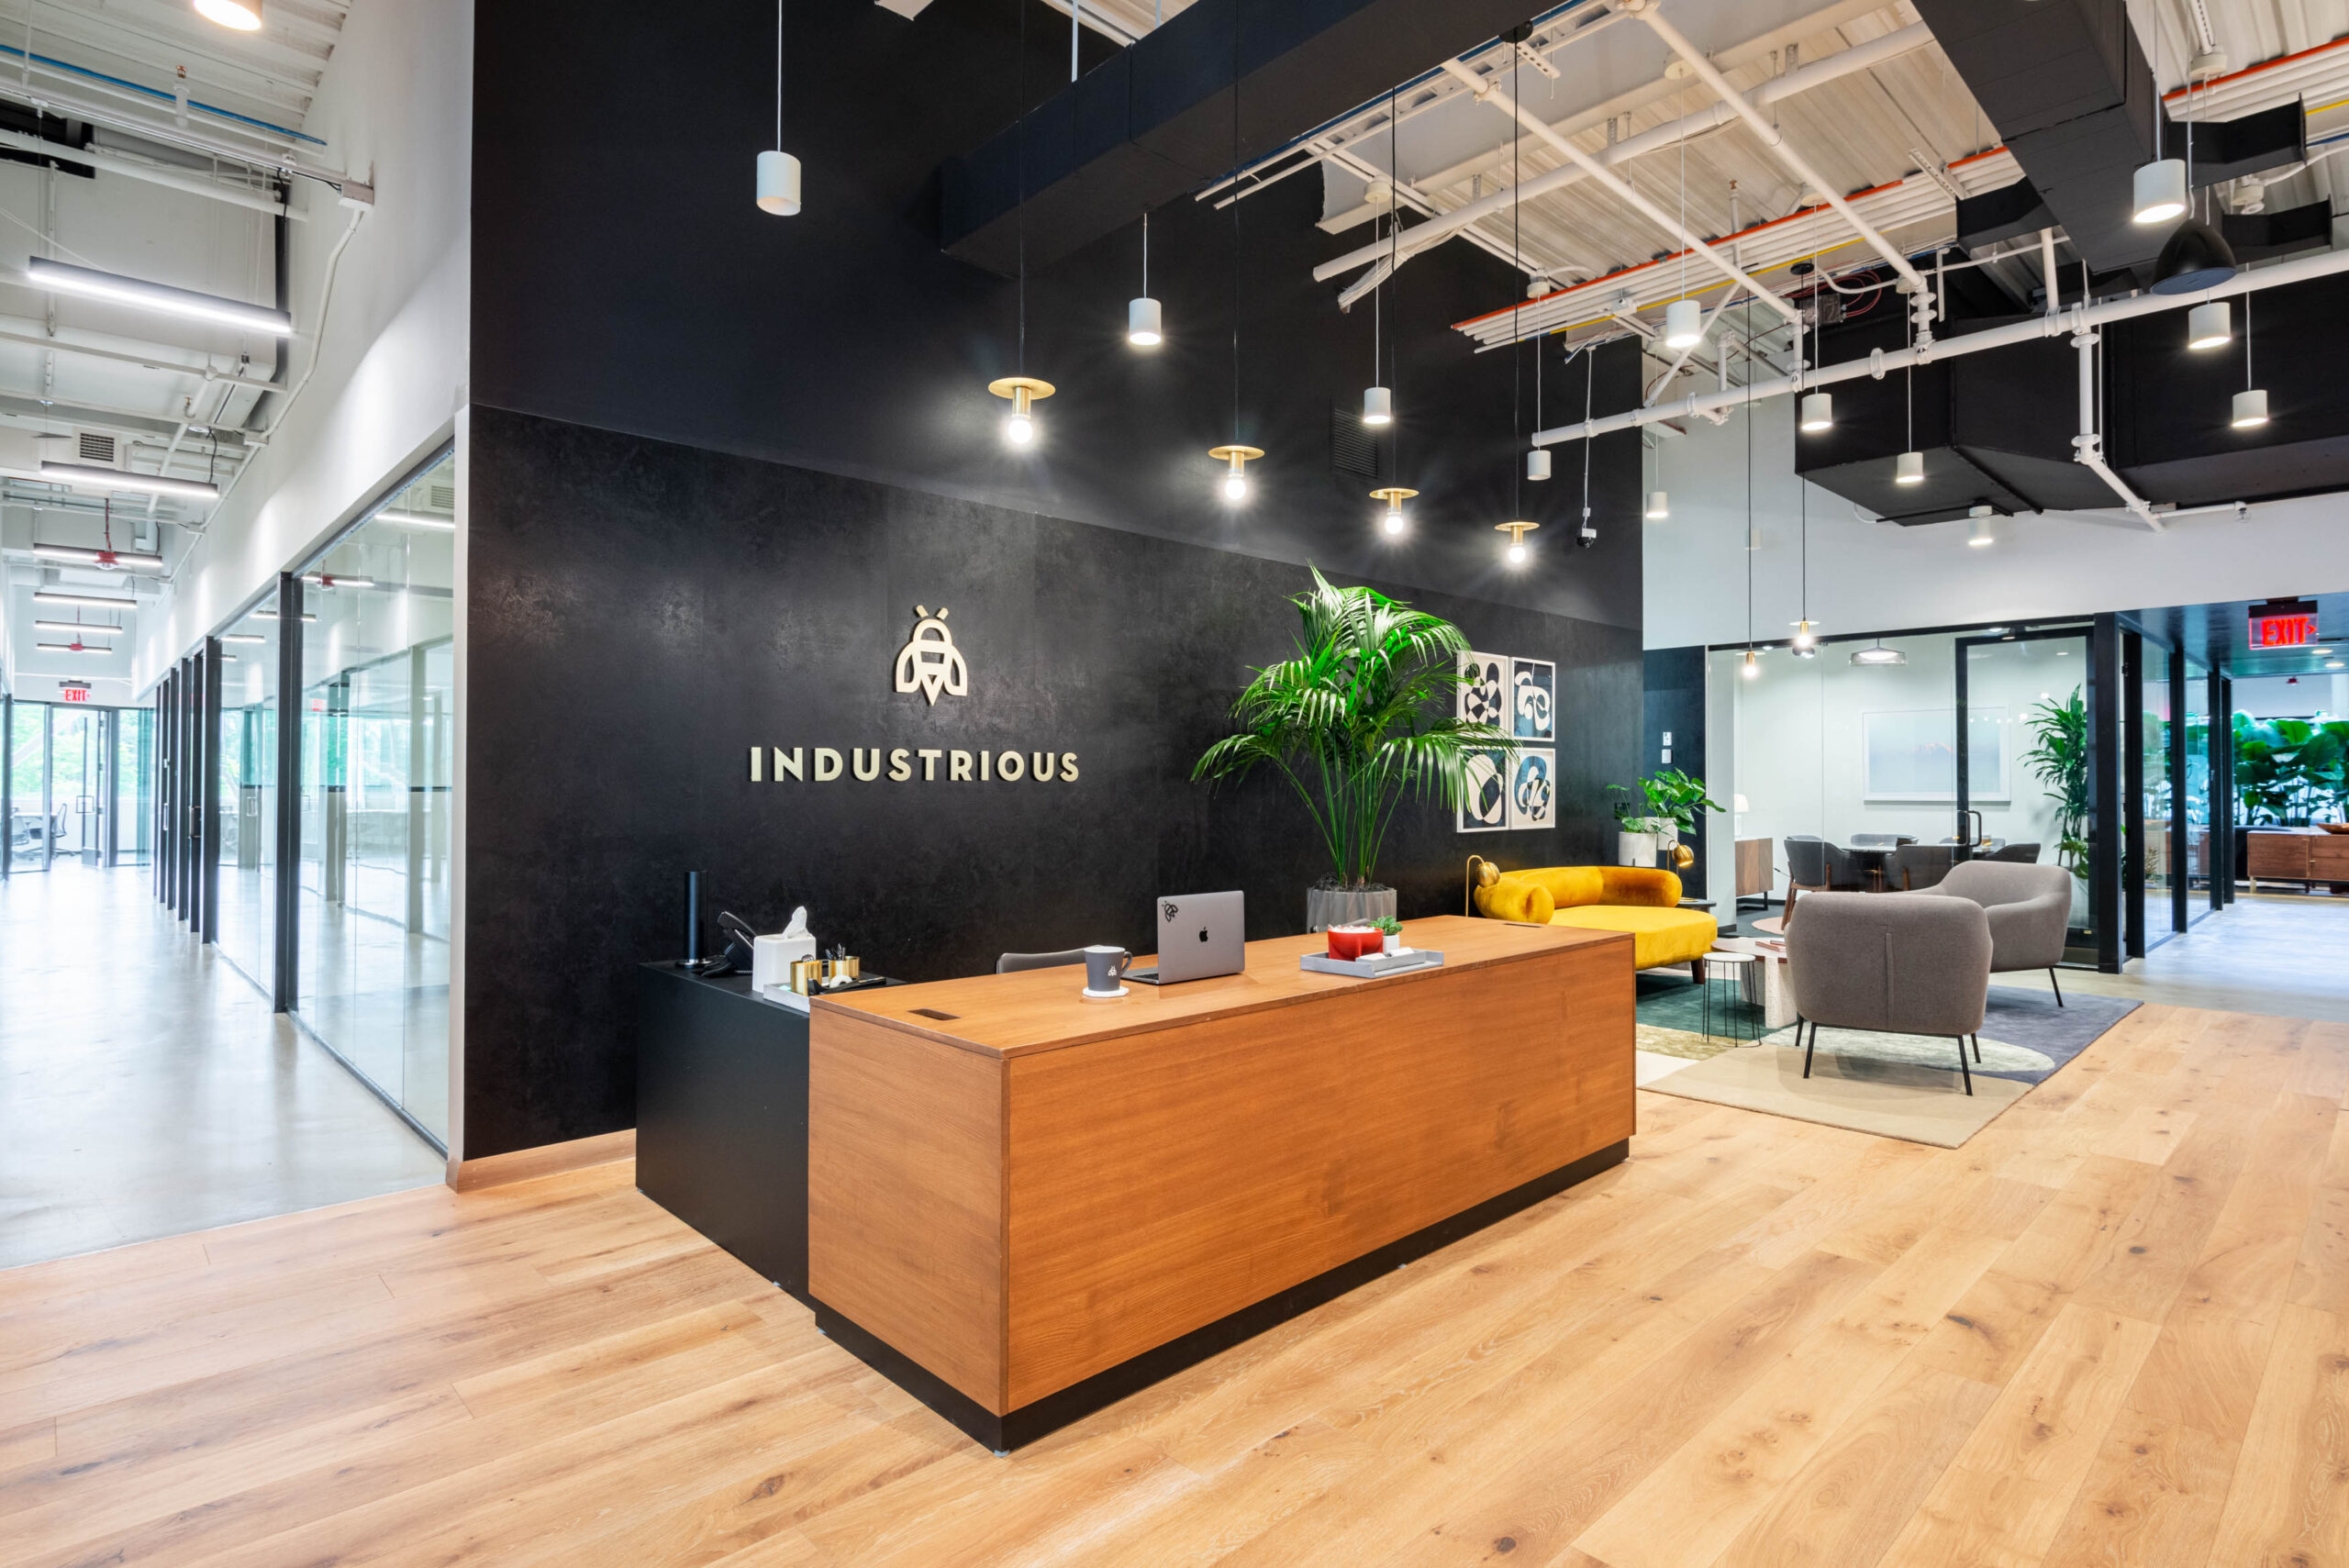 New Jersey's most luxurious co-working space has arrived